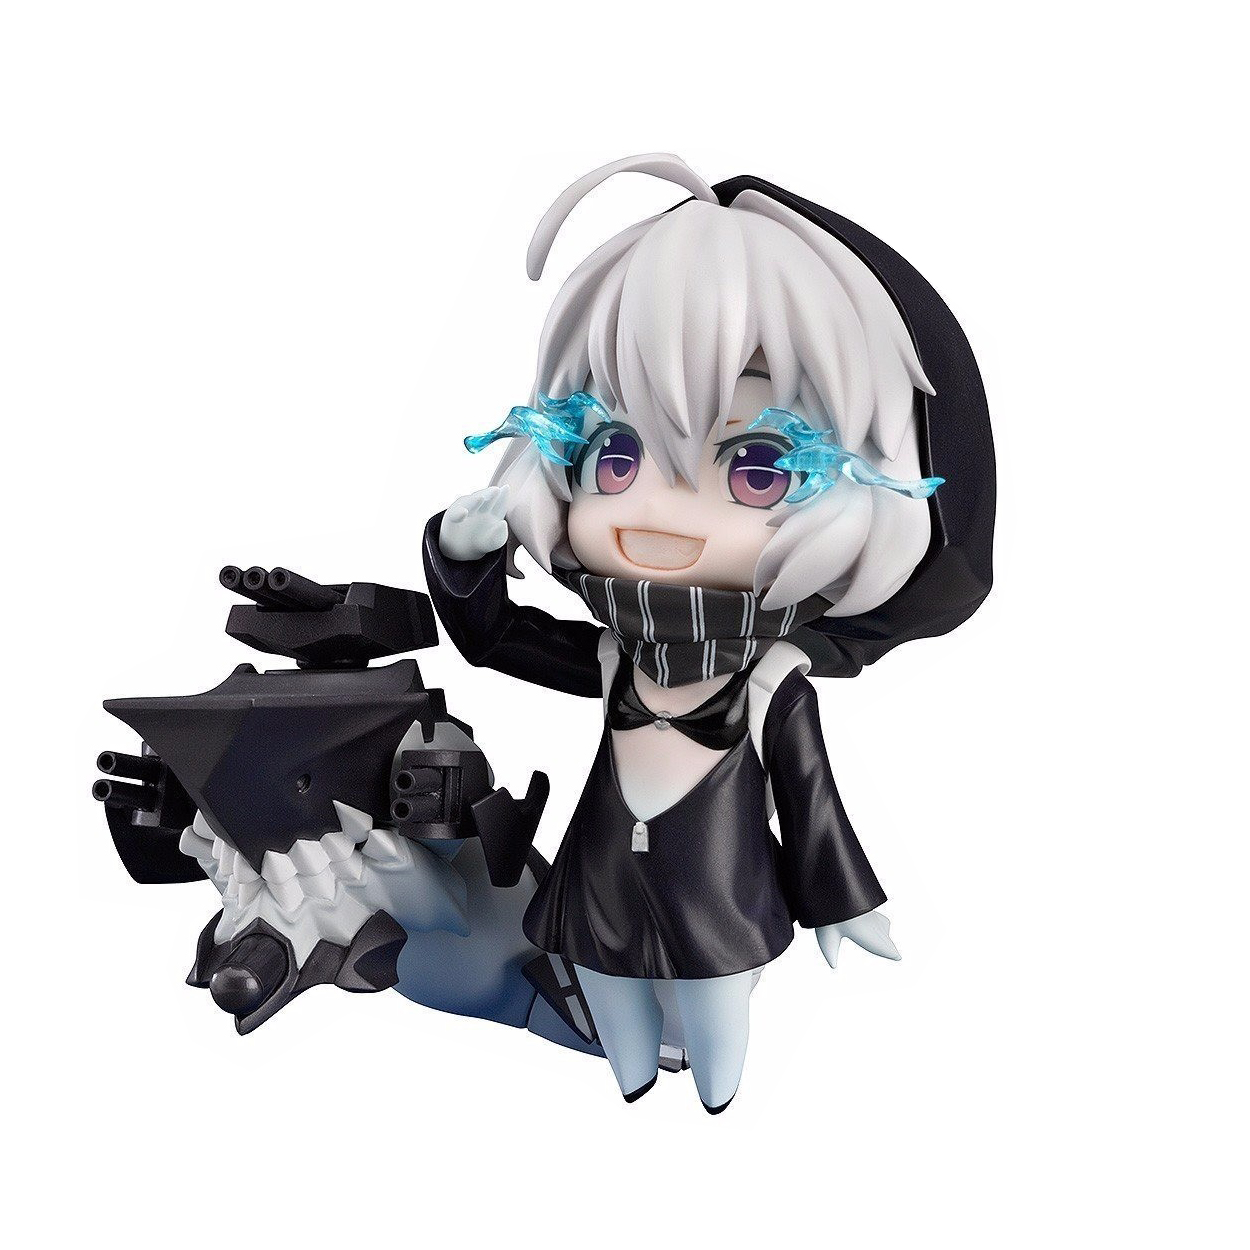 Chanycore GSC Nendoroid 494 # Corazzata L Collection Kan Colle Ri-Classe Boxed Action Figure Model Collection Toy 10 cm 4 ''